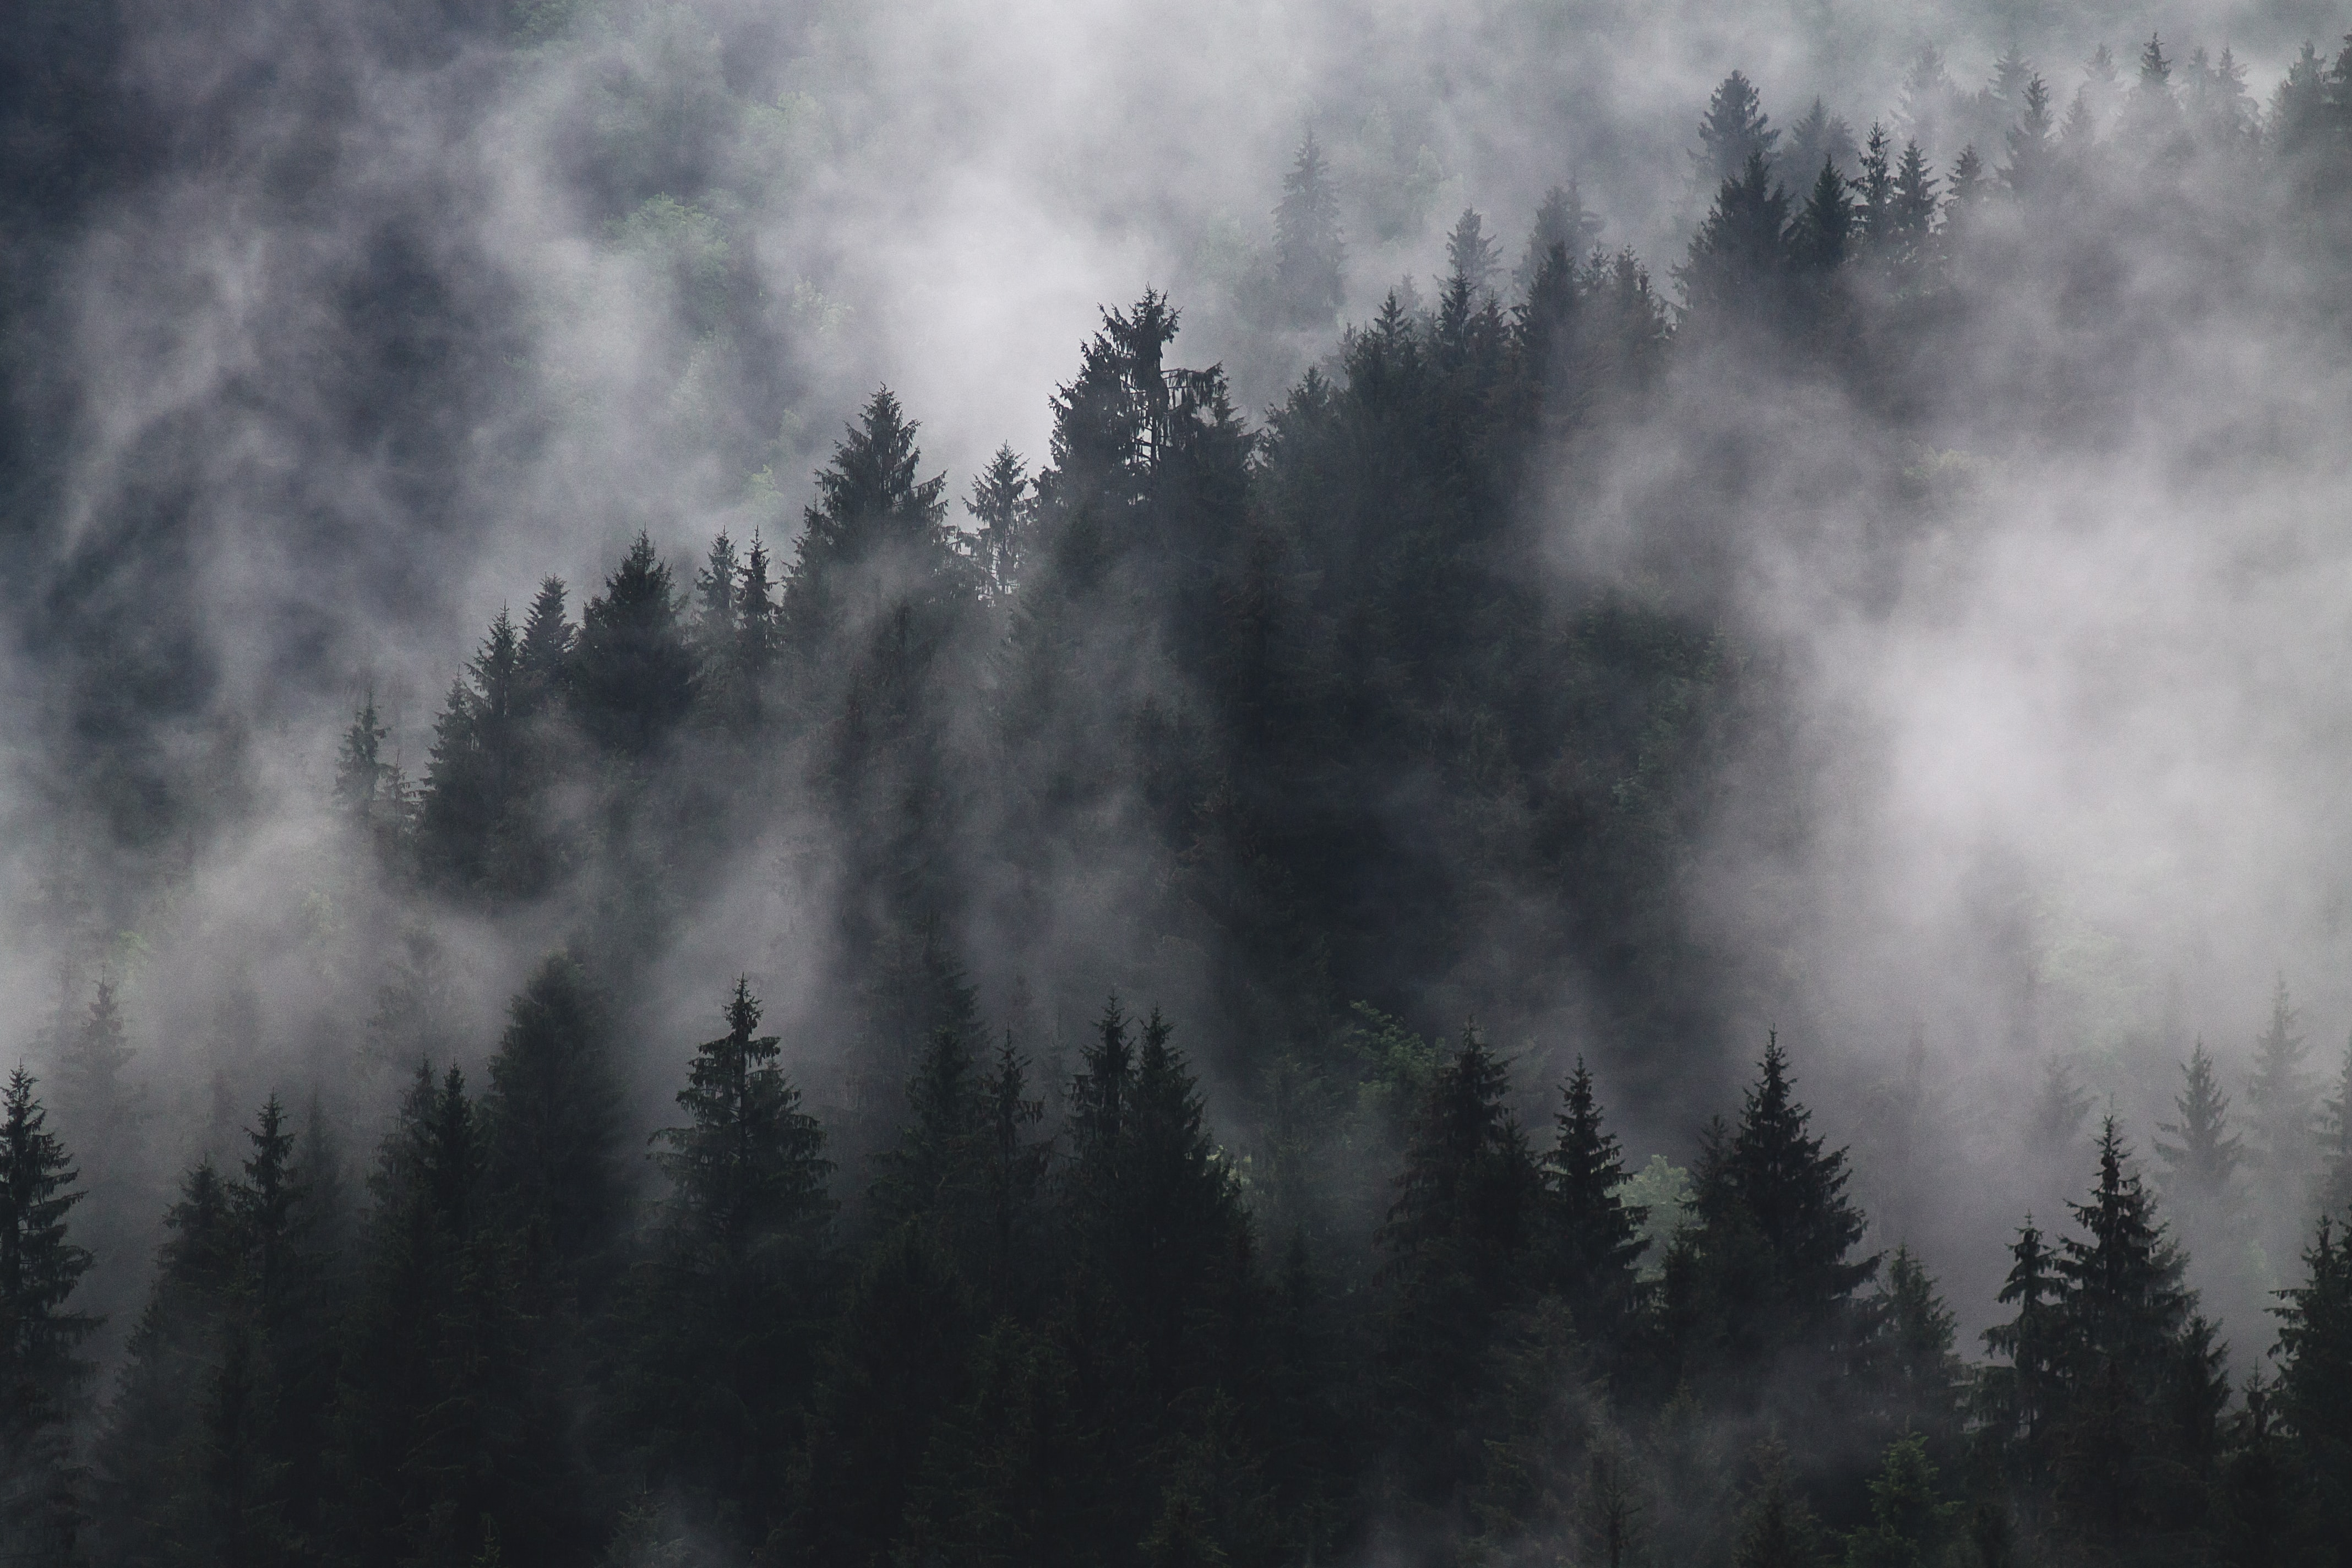 An evergreen forest enveloped in a patchy fog